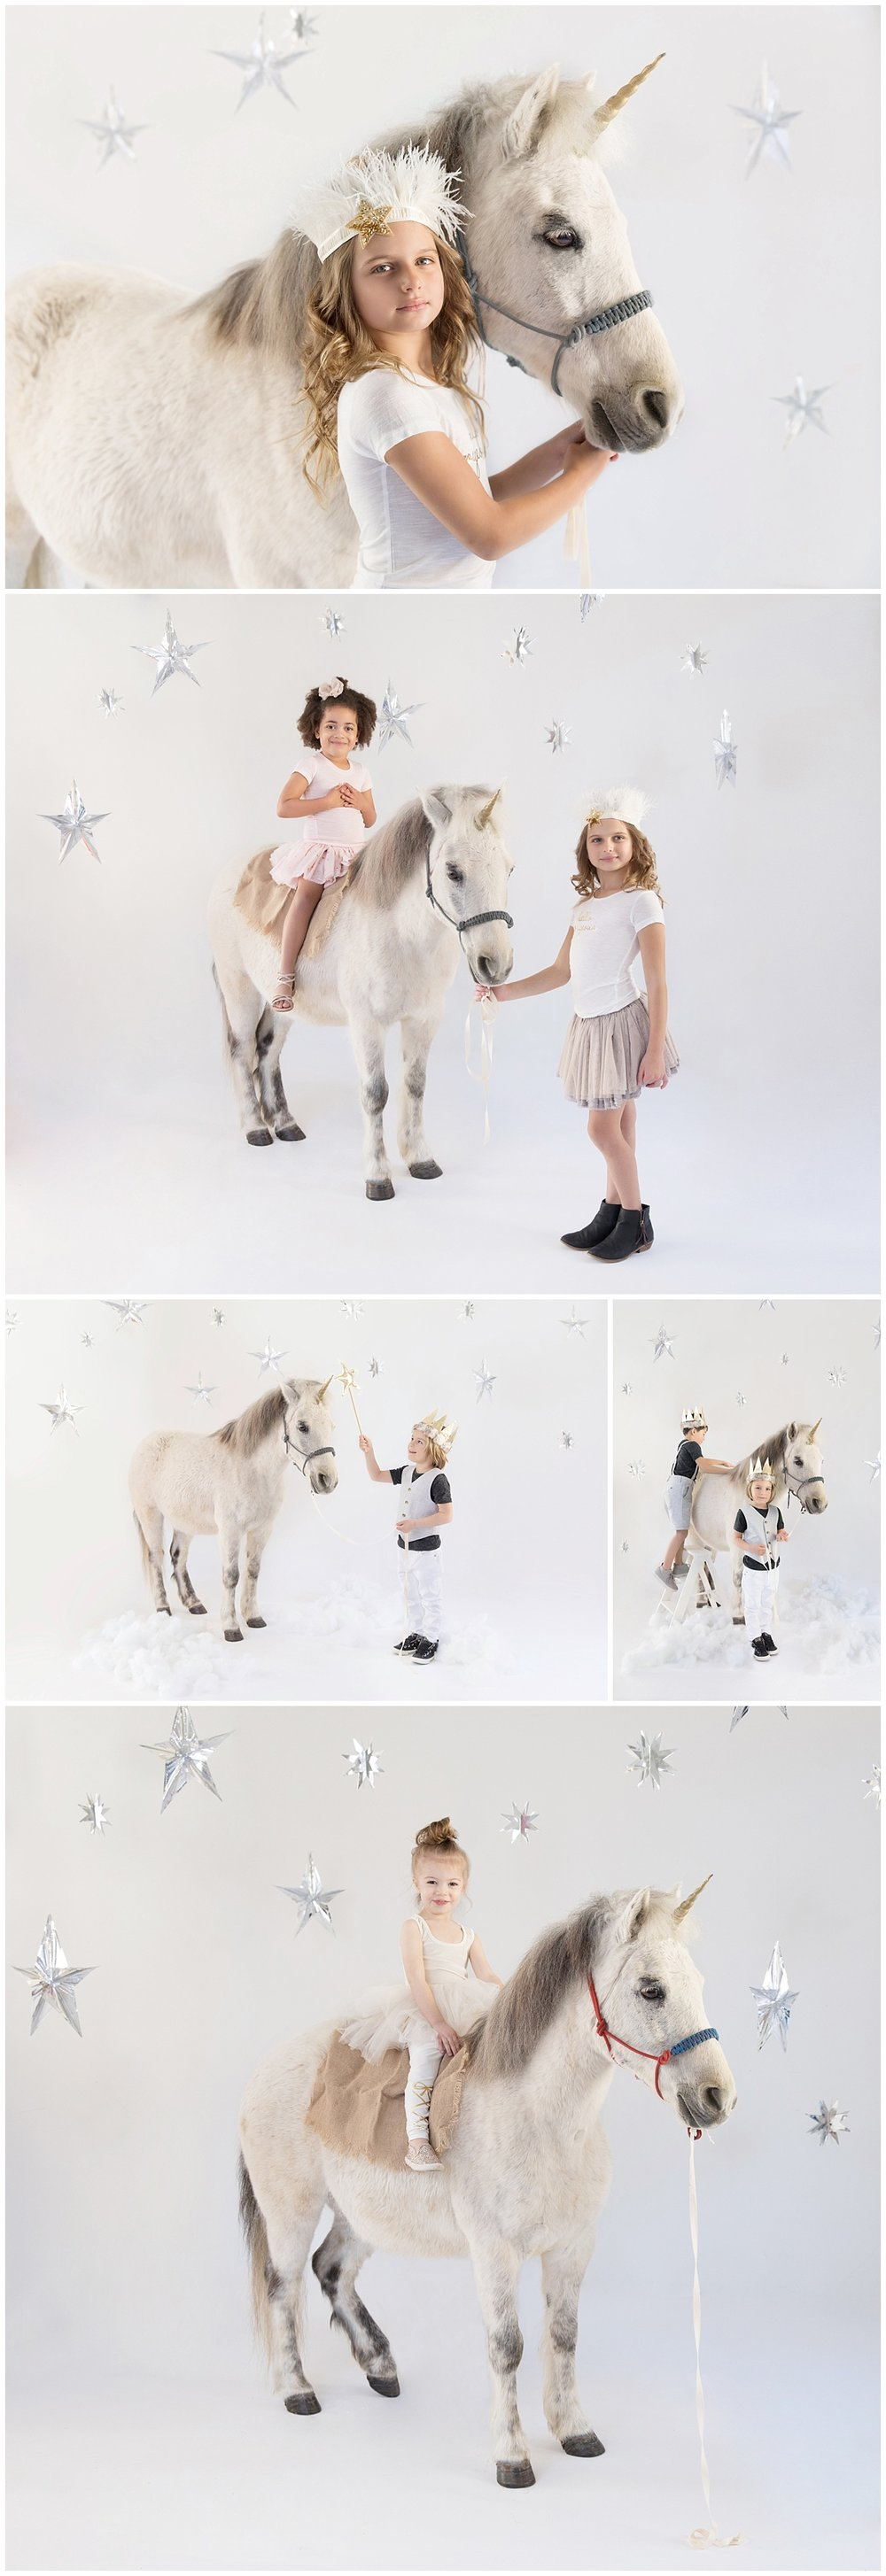 Magical_Unicorn_Photo_Shoot